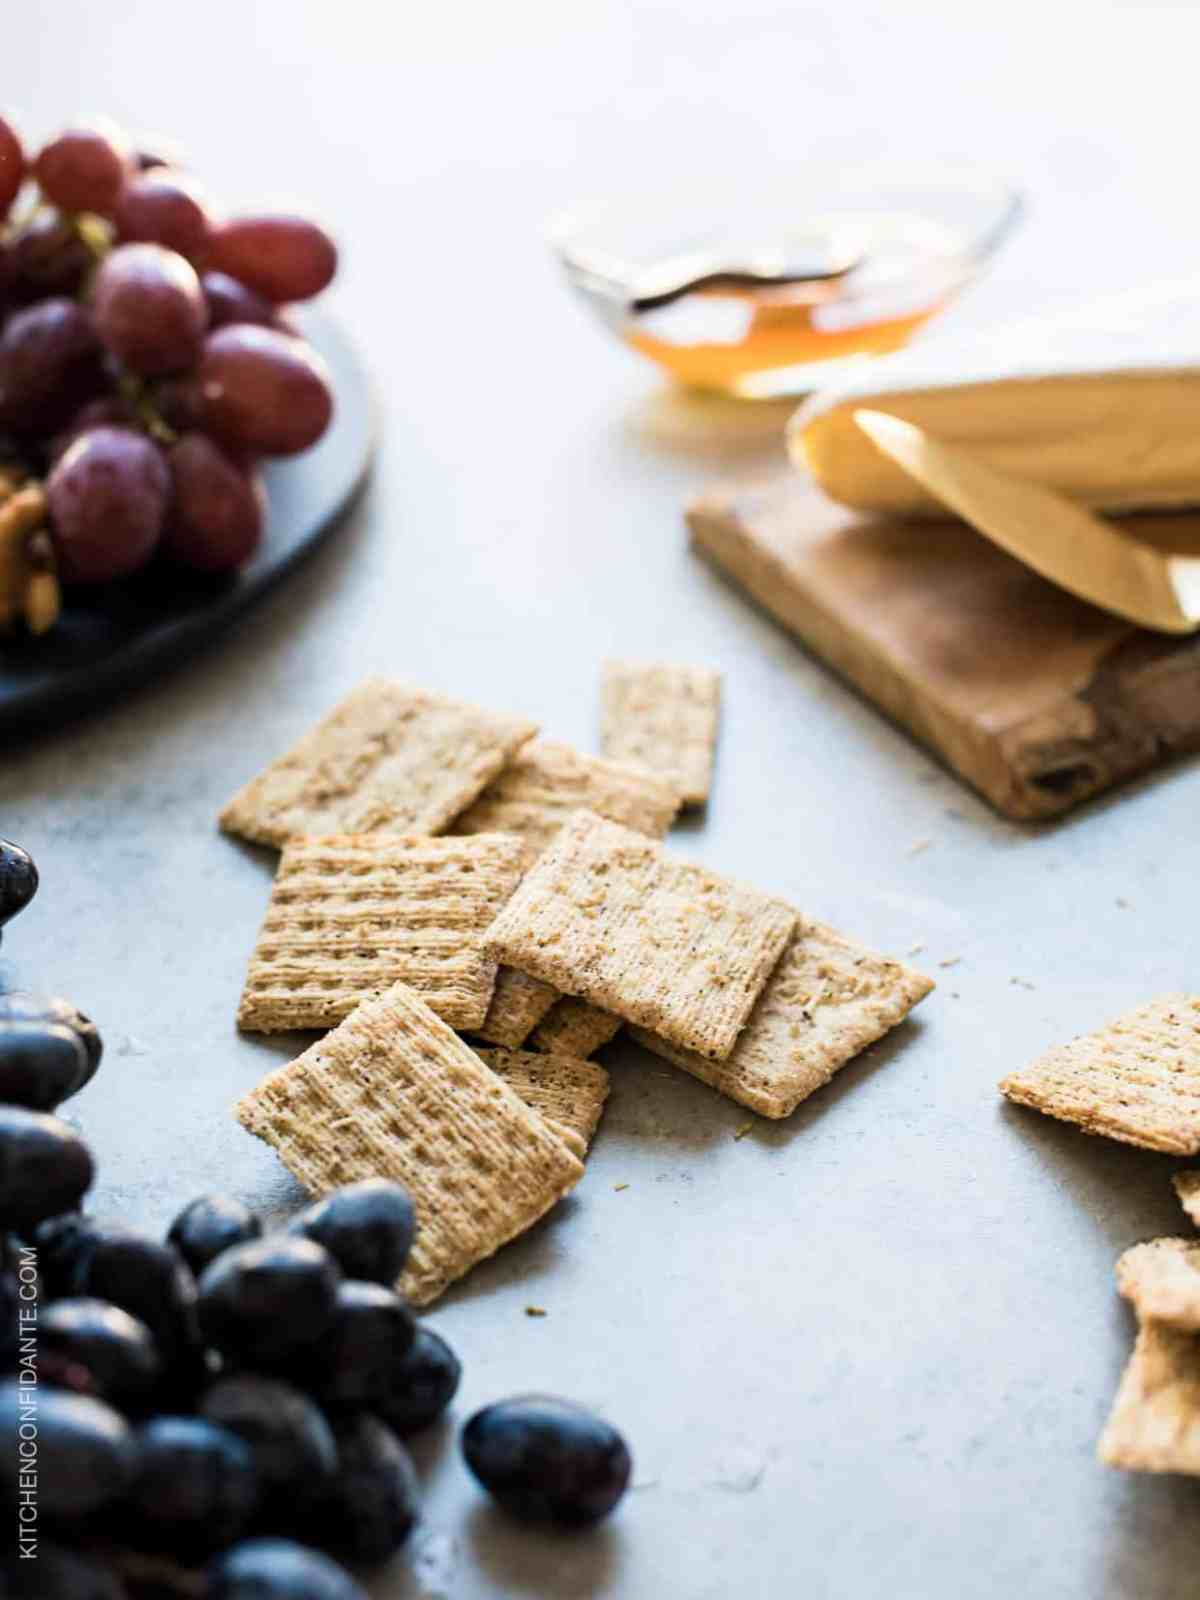 Triscuit crackers and grapes on a rustic surface.